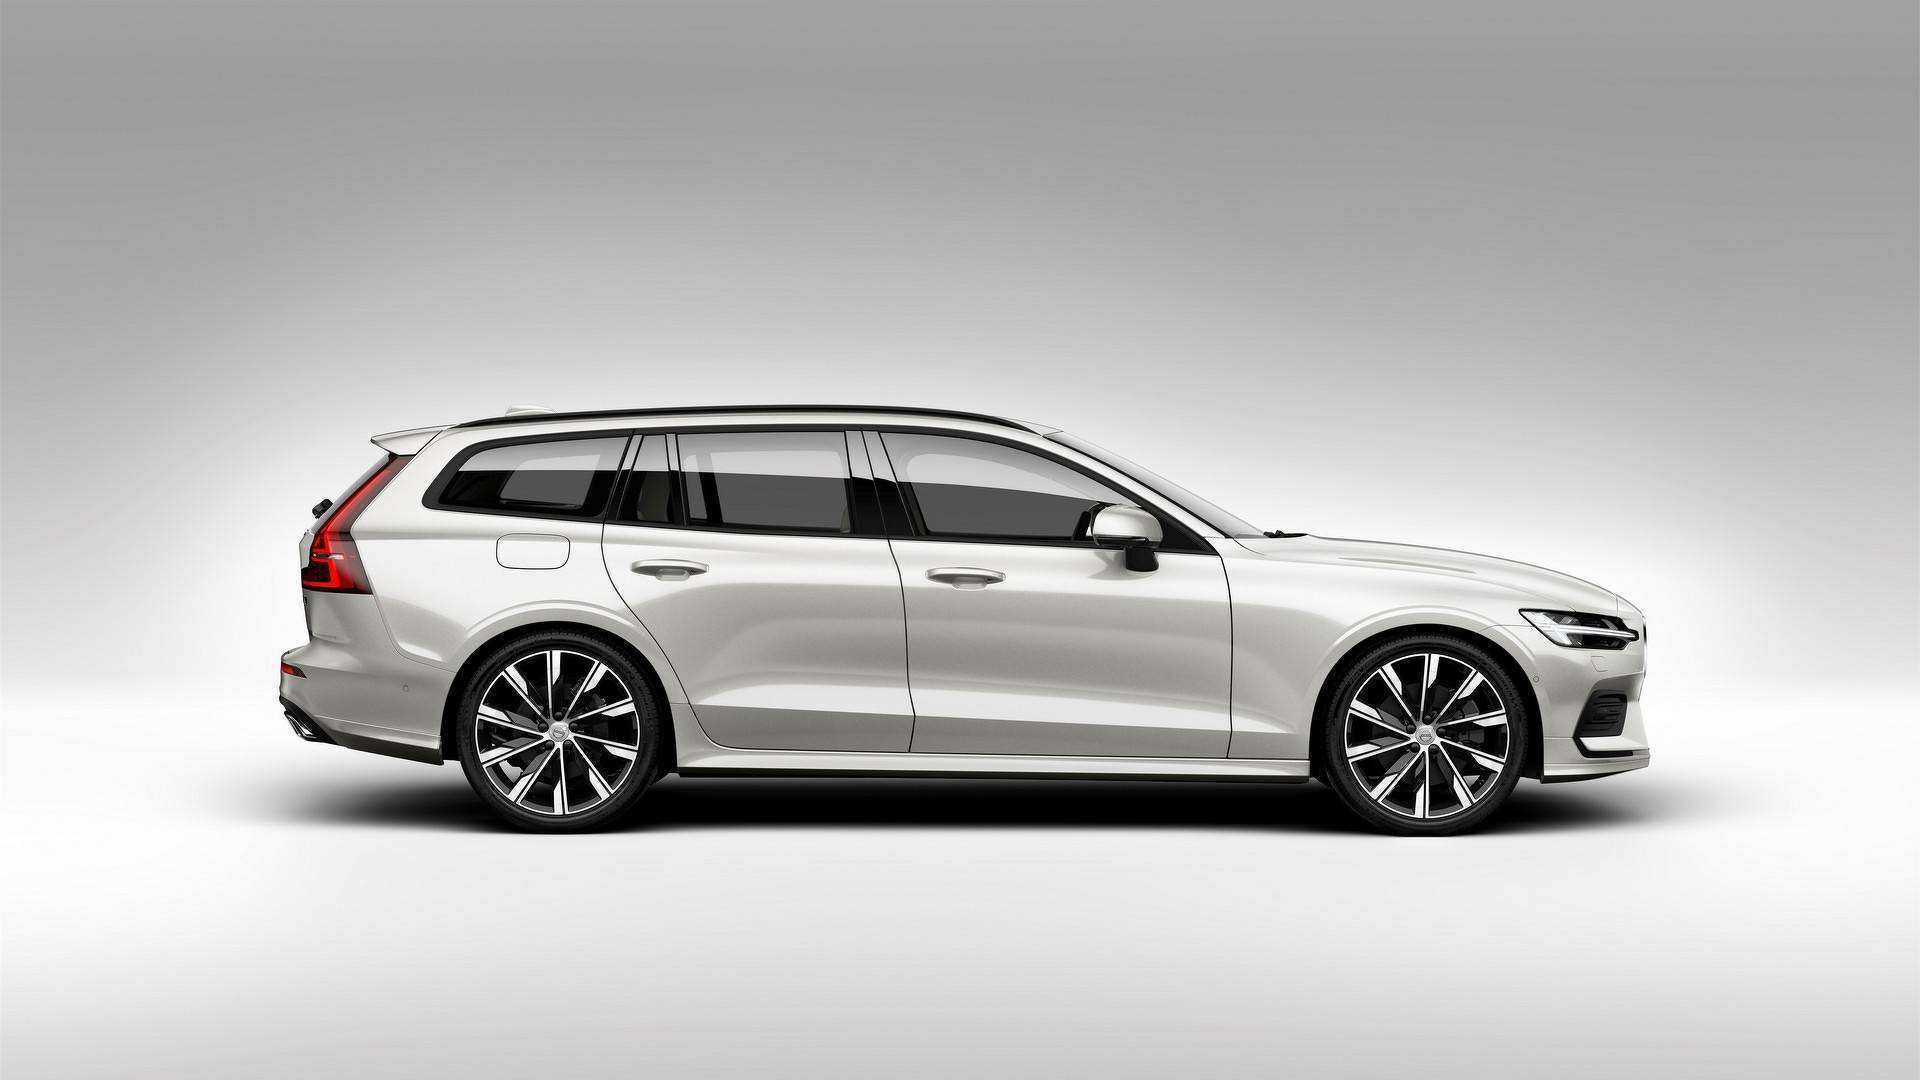 92 The 2019 Volvo V60 Cross Country Images for 2019 Volvo V60 Cross Country